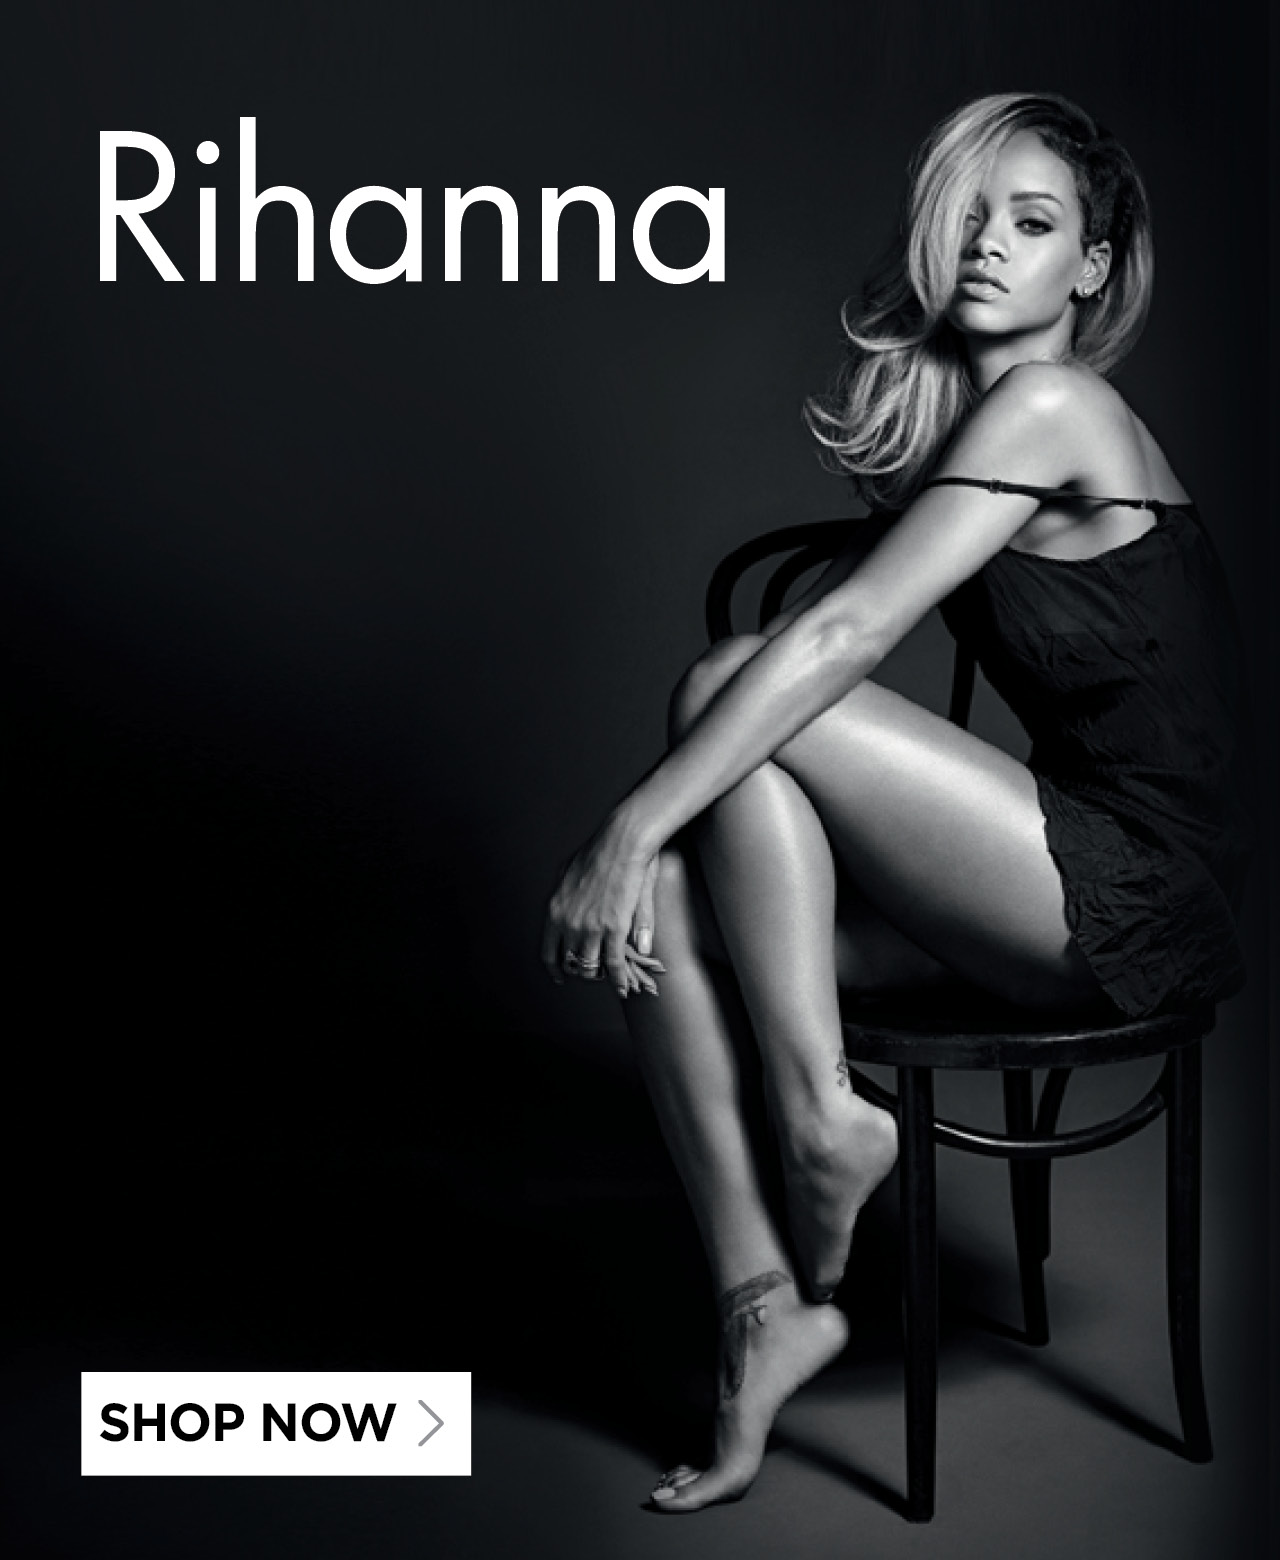 Rihanna - Shop Now